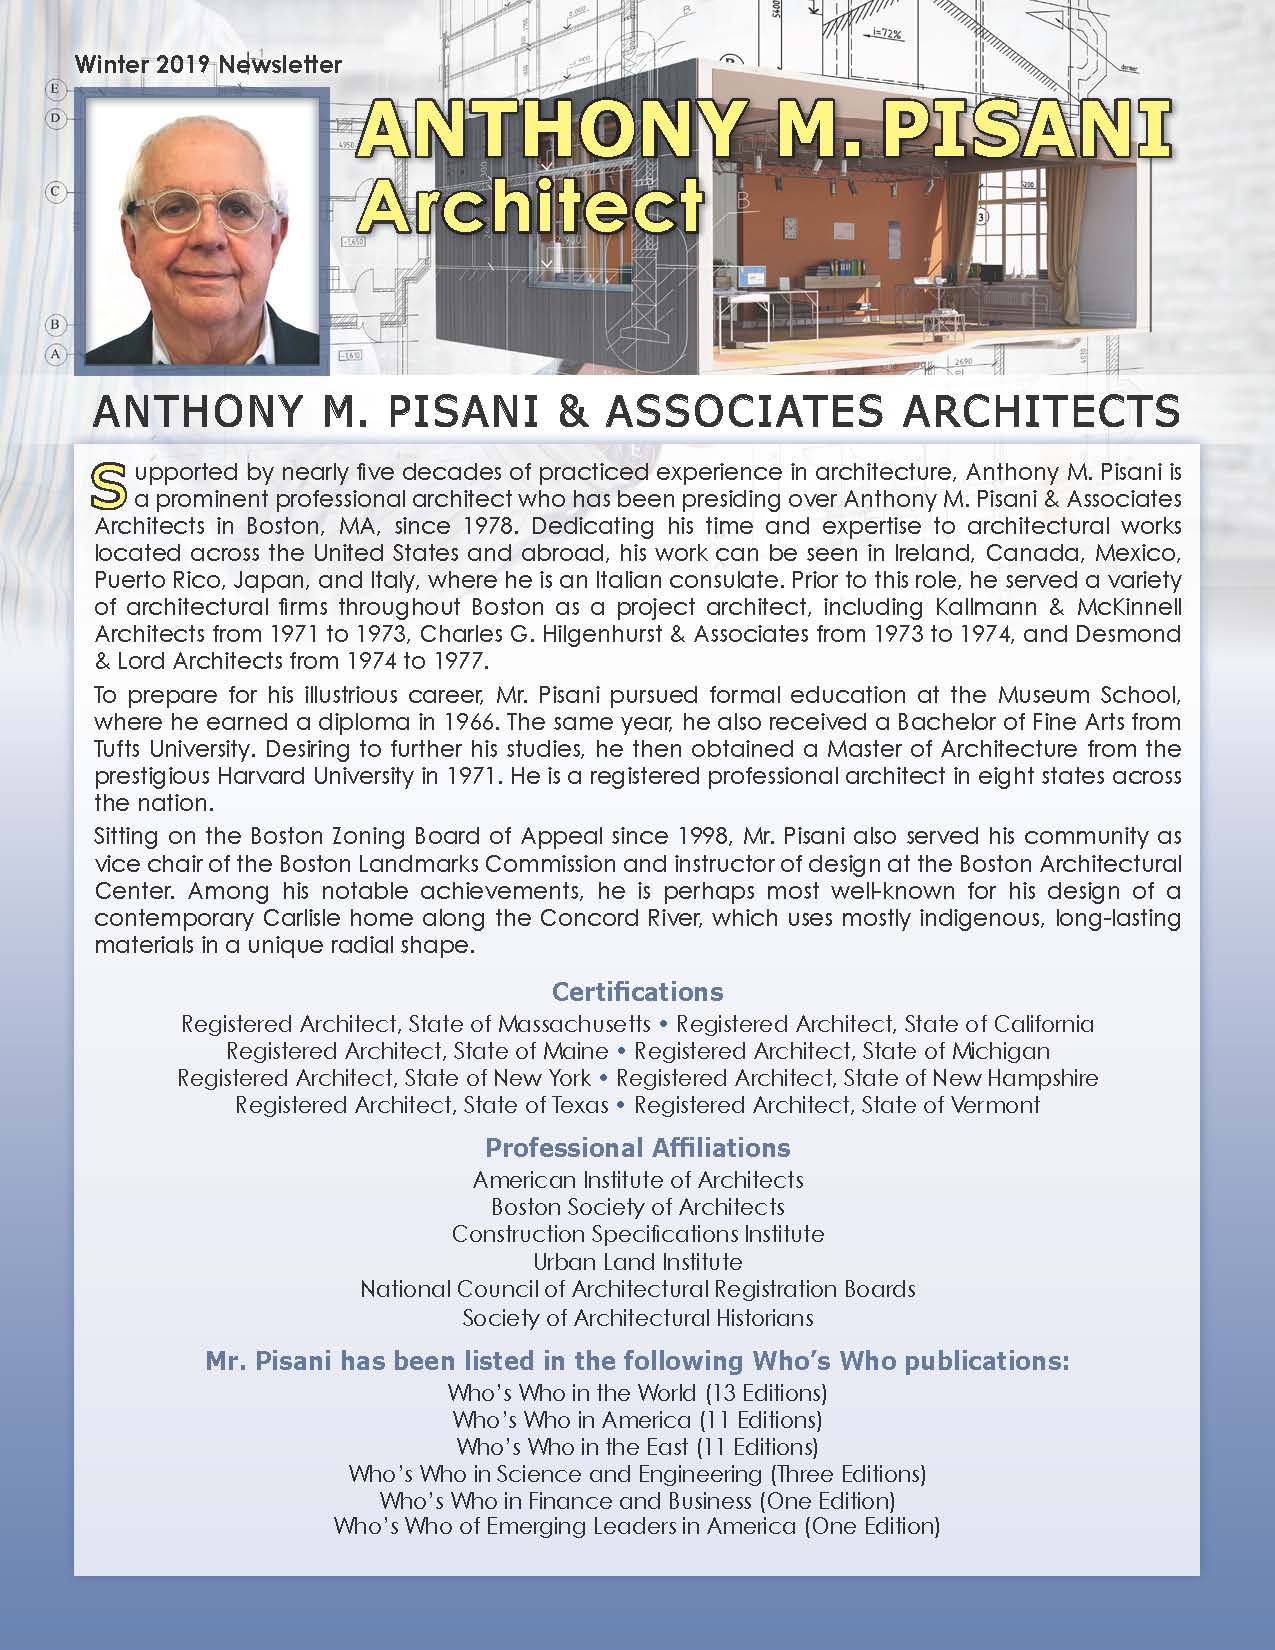 Pisani, Anthony 2133238_2837758 Newsletter.jpg